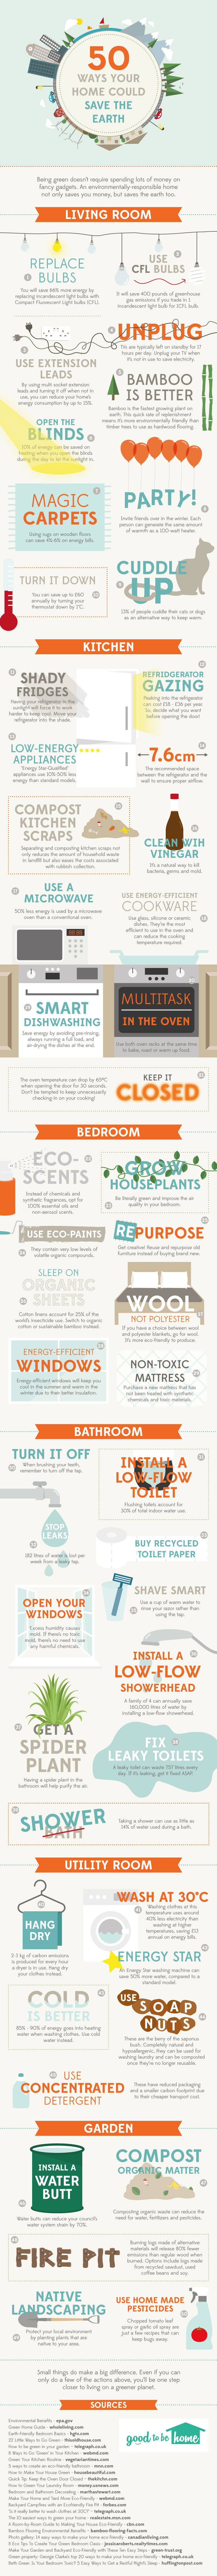 50-ways-your-home-could-save-the-earth Infographic